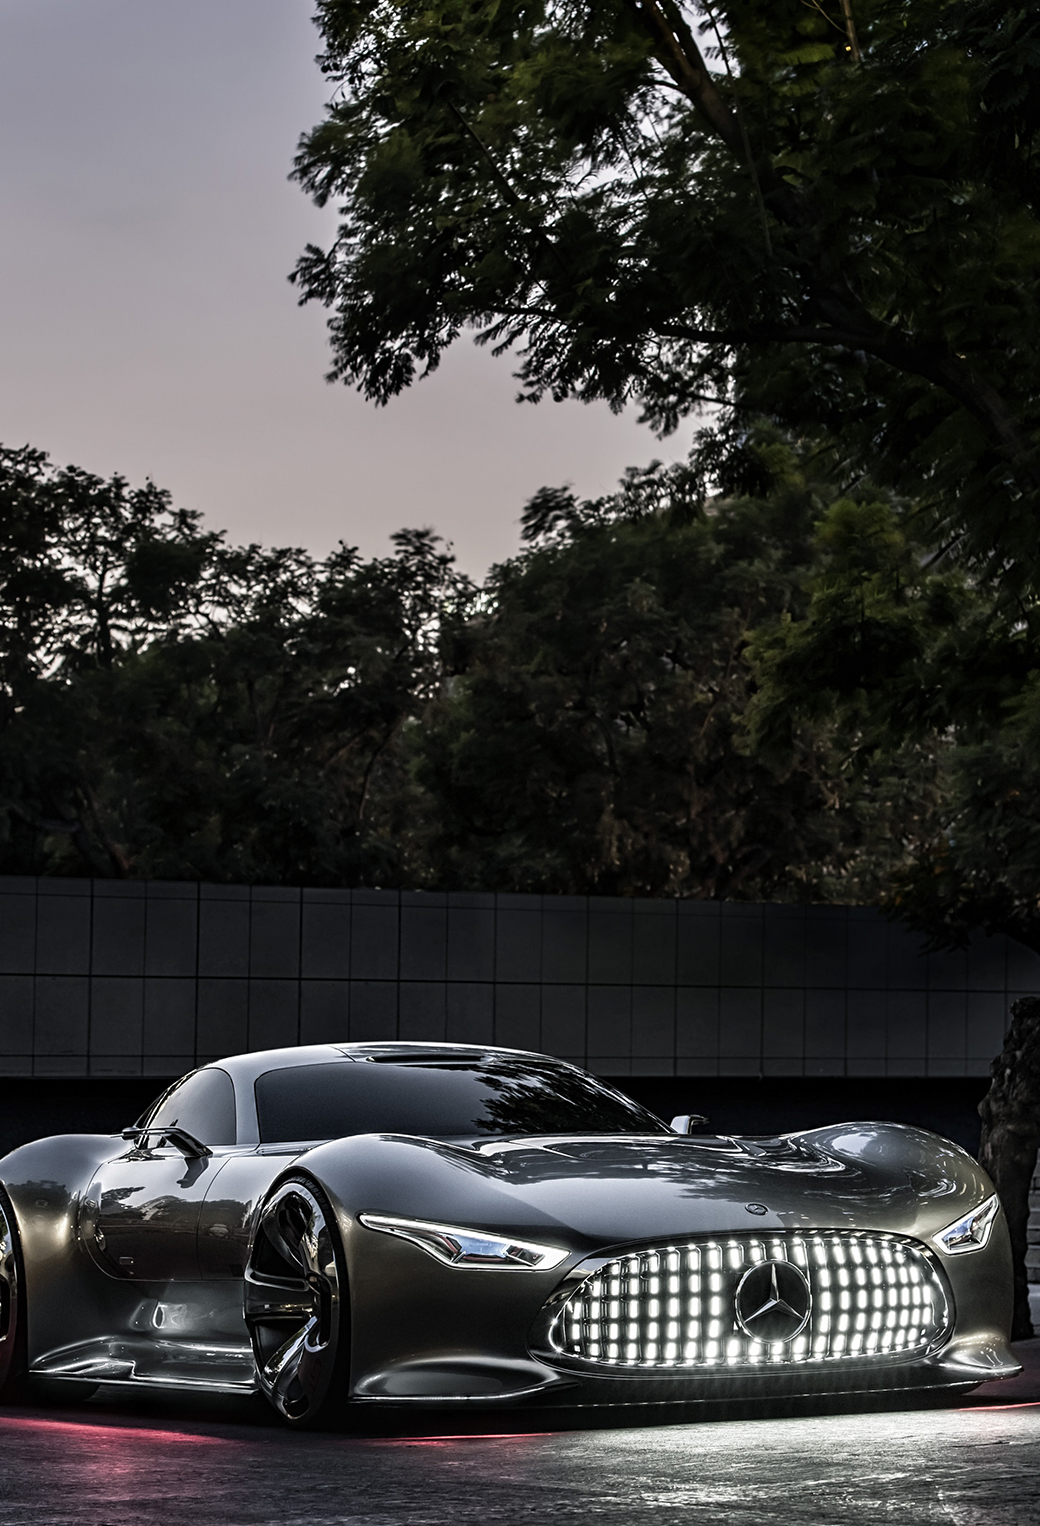 Cartoon Girl Wallpapers Free Download Mercedes Benz Amg Vision Wallpaper For Iphone X 8 7 6